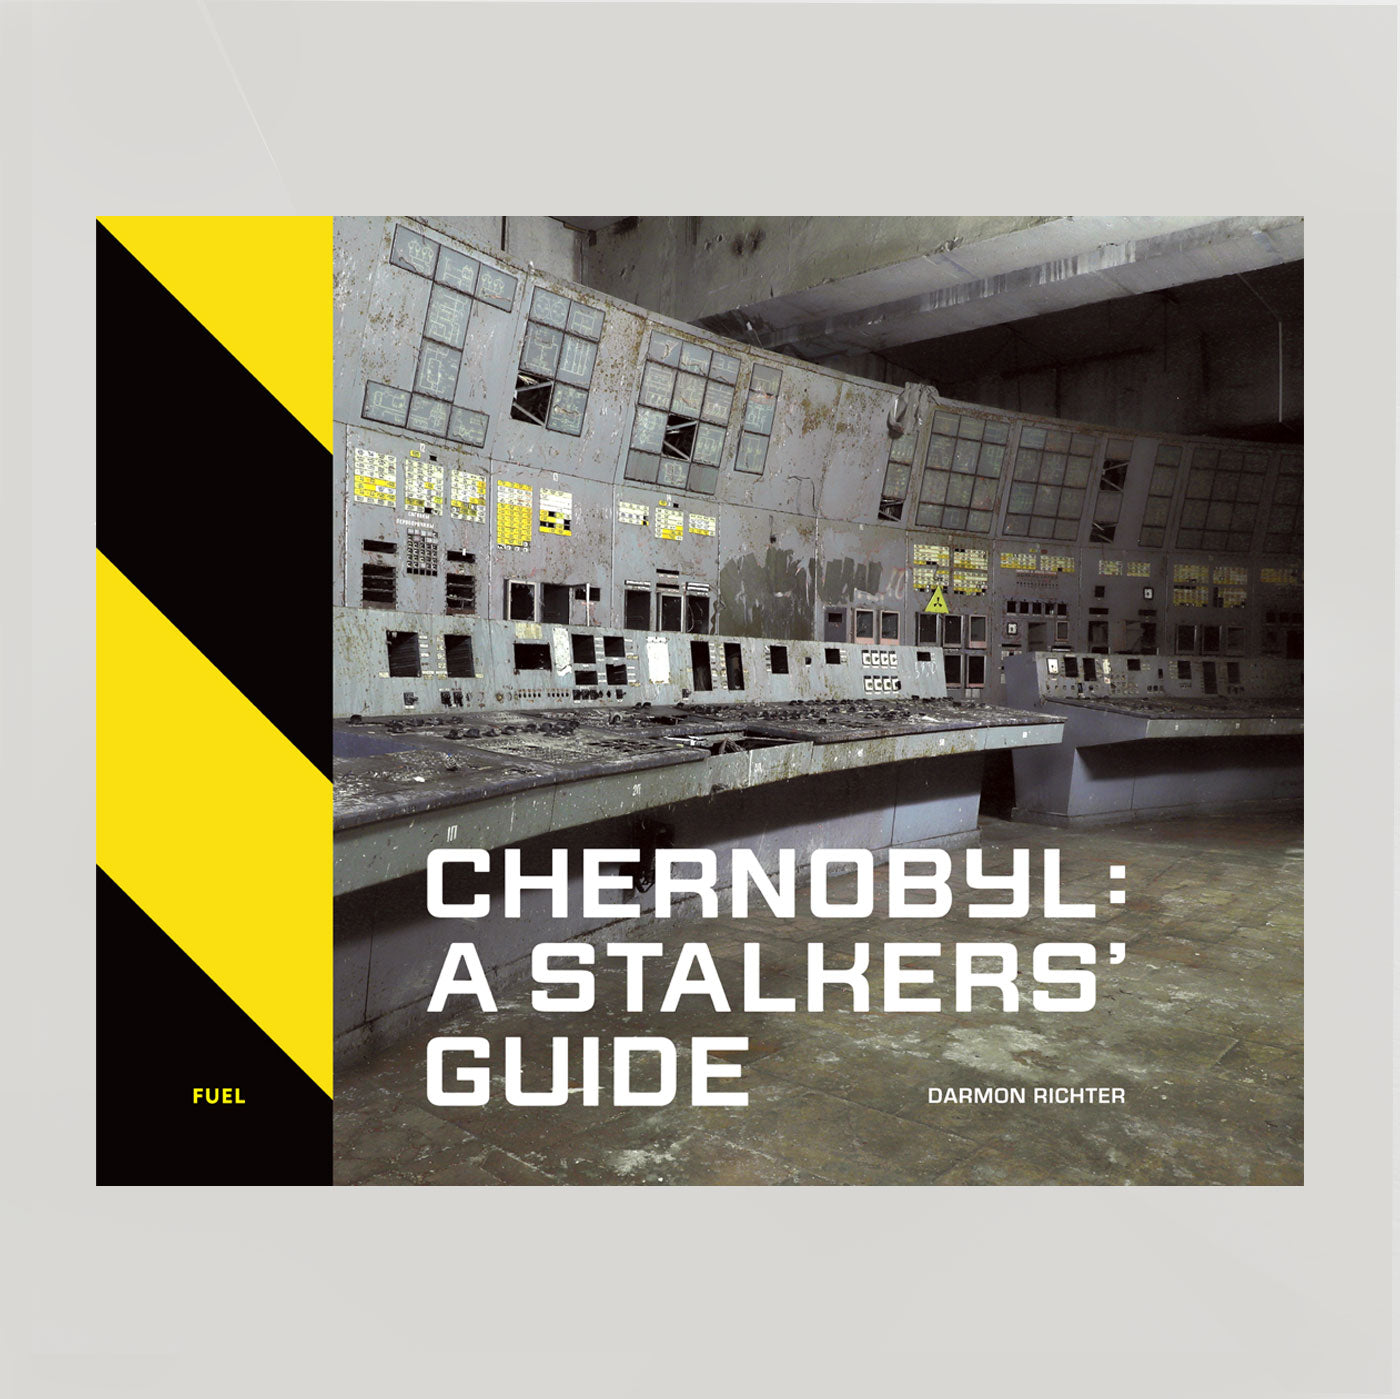 Chernobyl: A Stalkers Guide | Darmon Richter | Colours May Vary